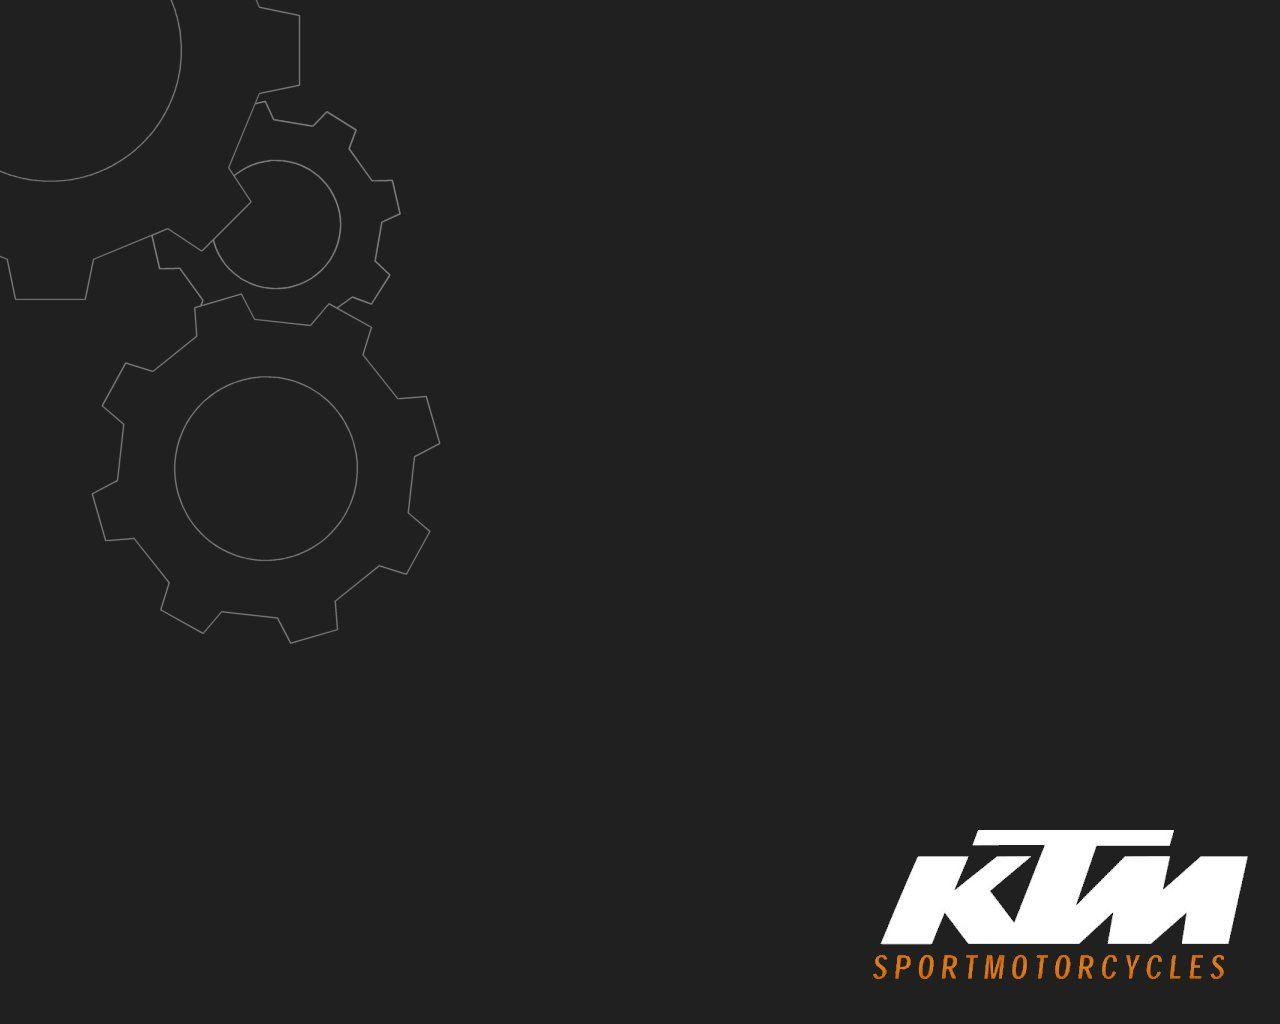 KTM wallpapers 1 by helium2k